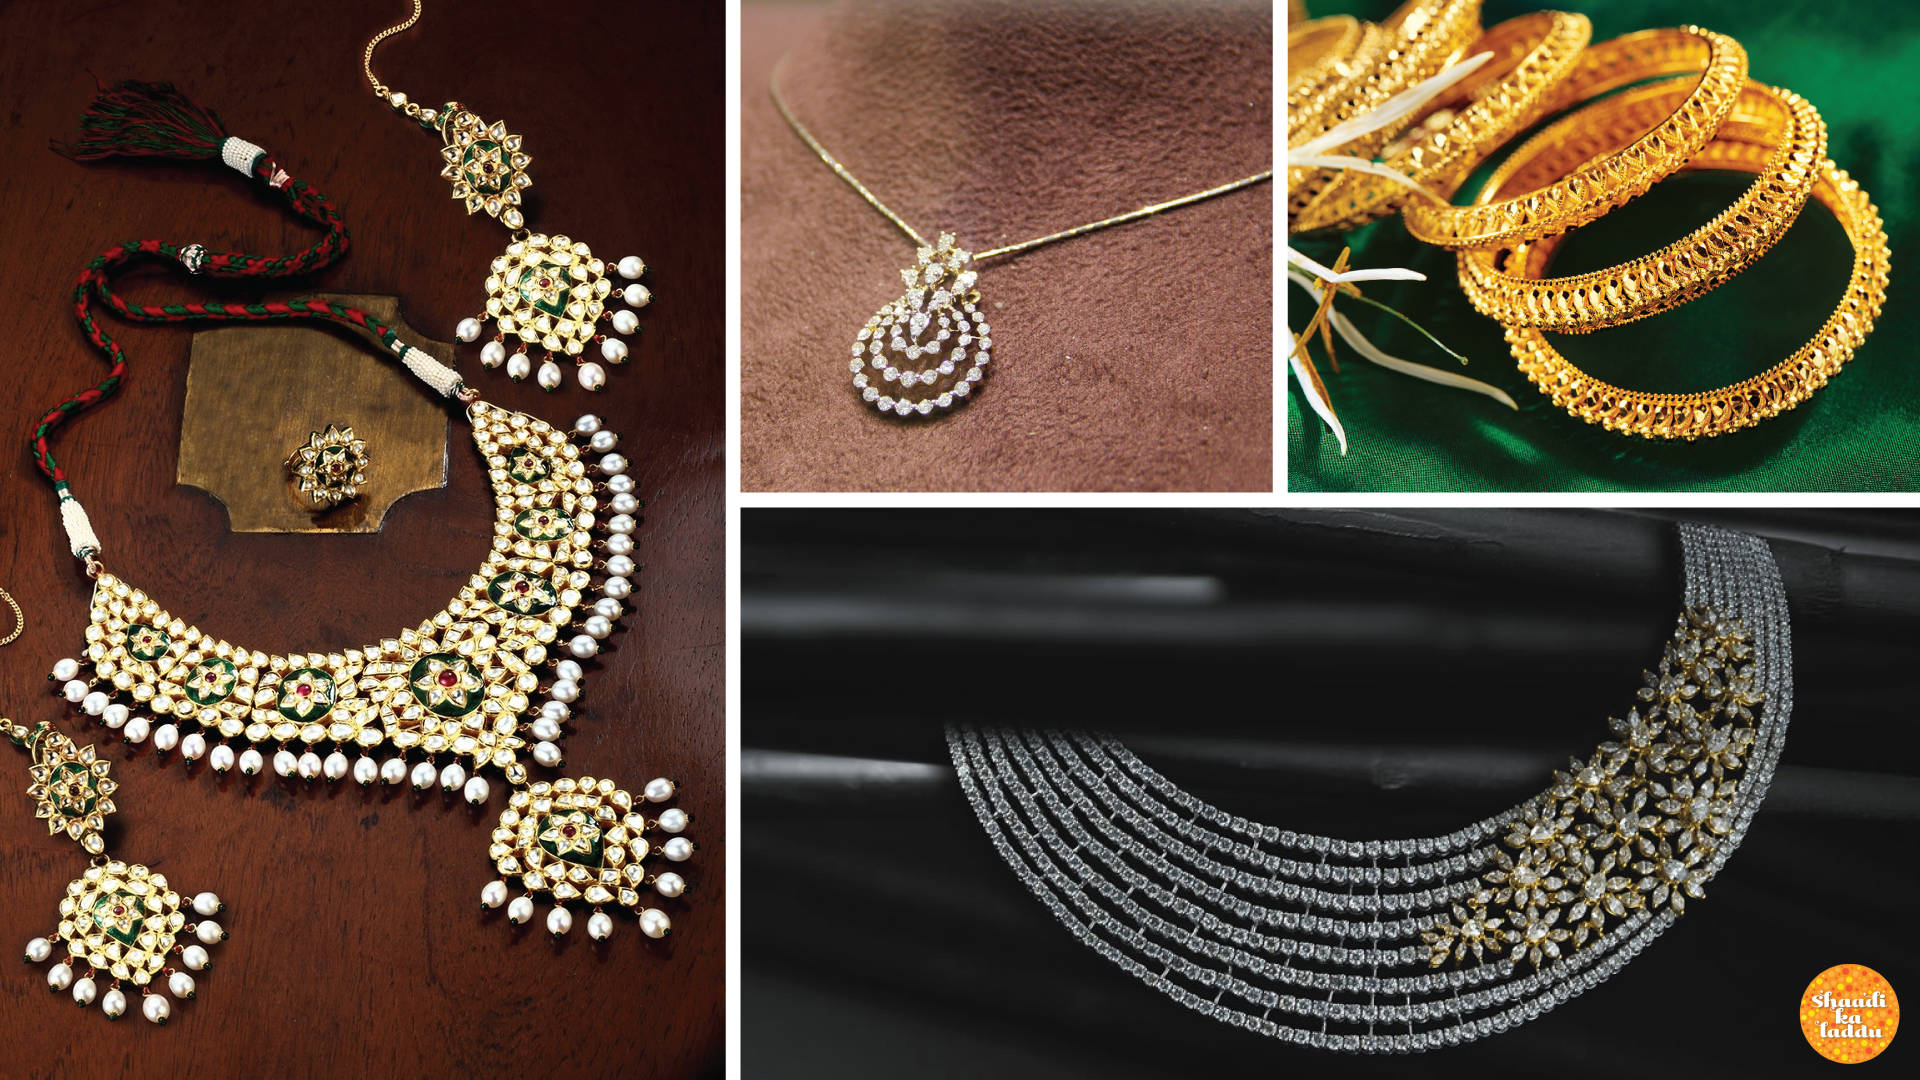 Range of Kundan, diamond, gold necklaces and bangles for bride